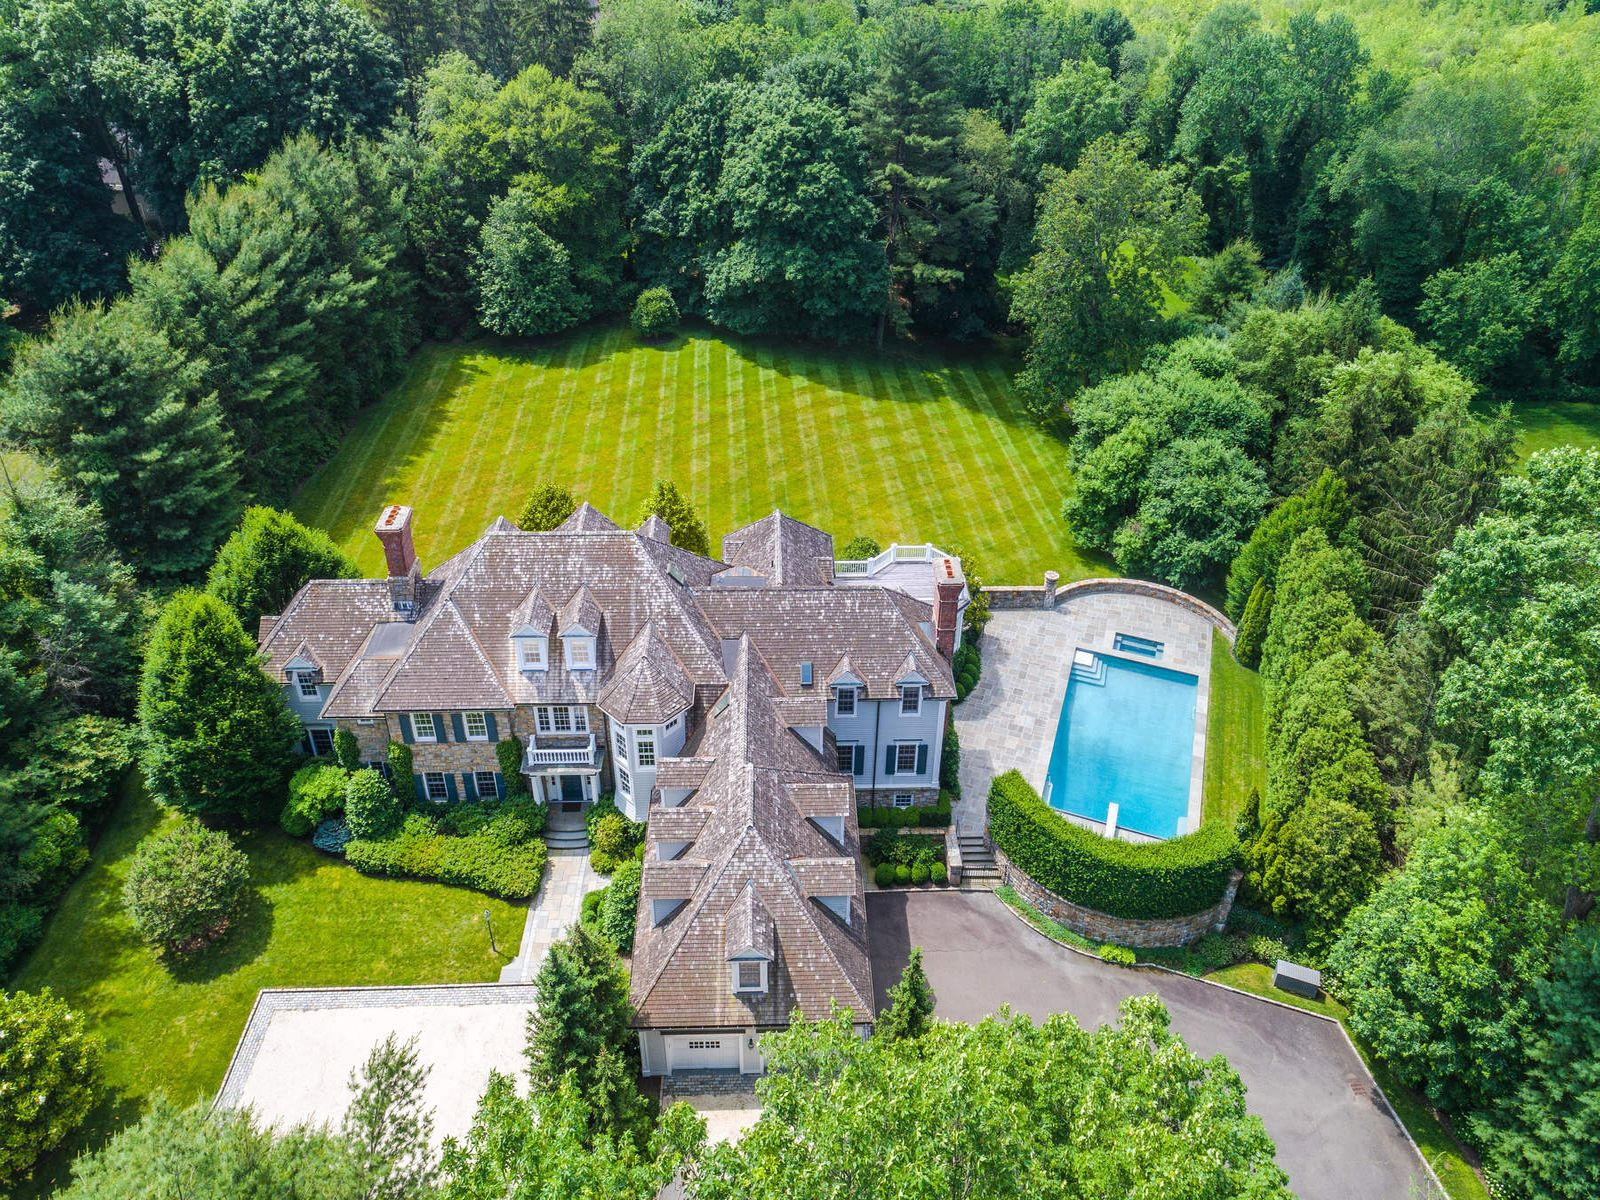 Privacy in Mid-Country, Greenwich CT Single Family Home - Greenwich Real Estate